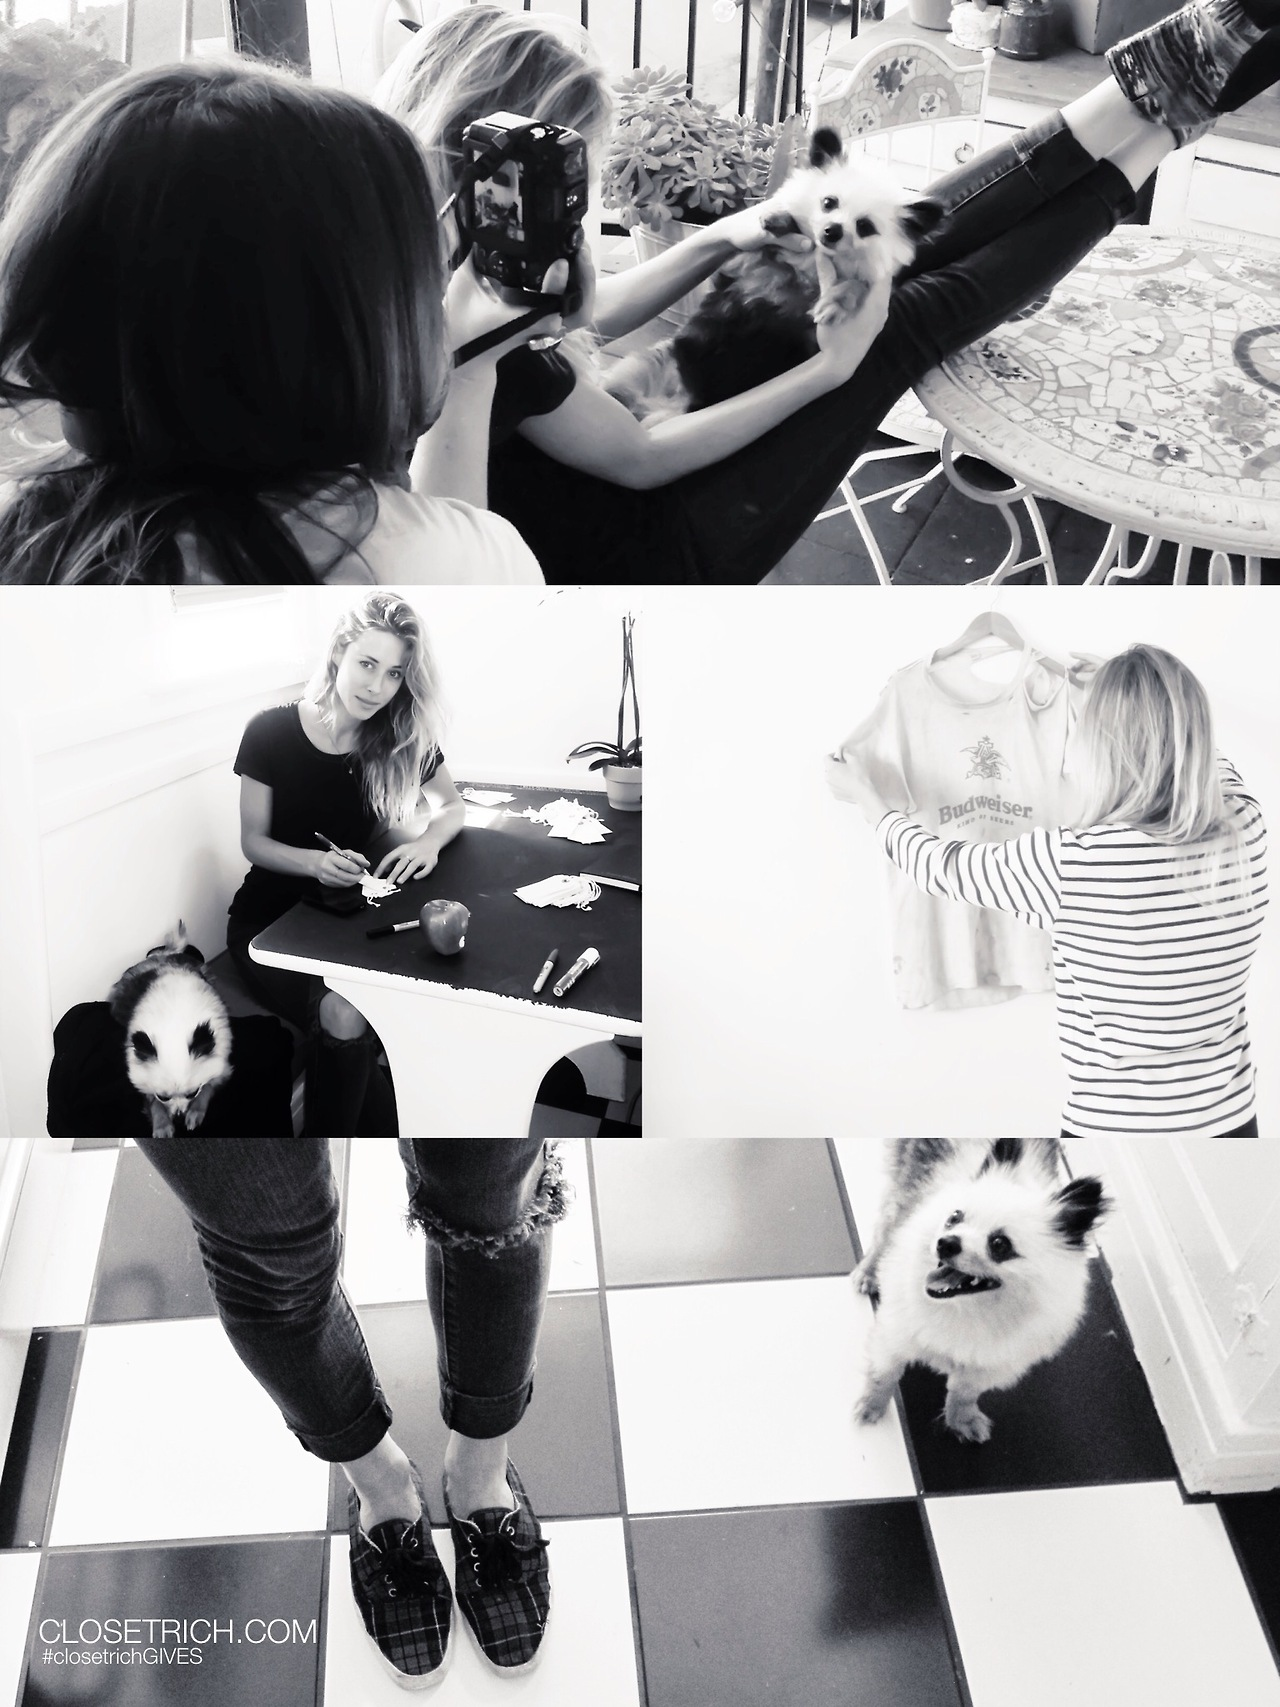 Some behind the scenes snaps from our #closetrichGIVES shoot ft. 2 fave pieces from the sale: Vintage Budweiser Tee + a pair of perfectly worn Vintage Sneakers + bonus pts. for the cameo by the cutest fucking dog ever.